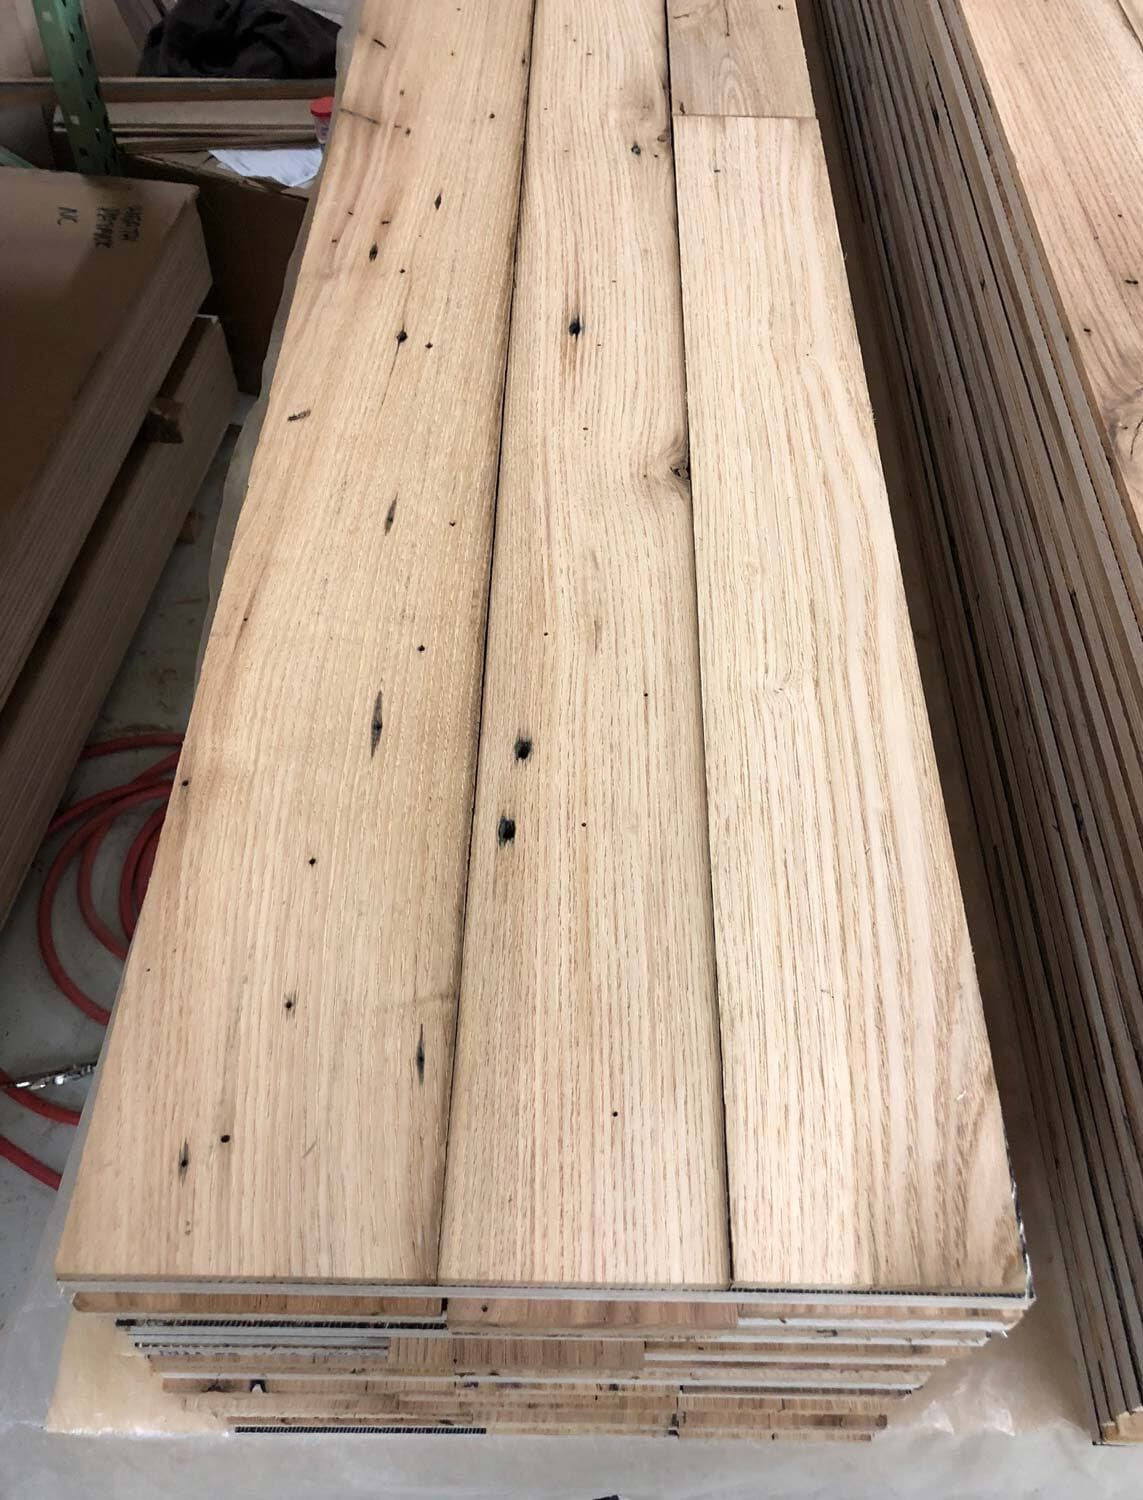 Reclaimed engineered flooring made from reclaimed chestnut wood.